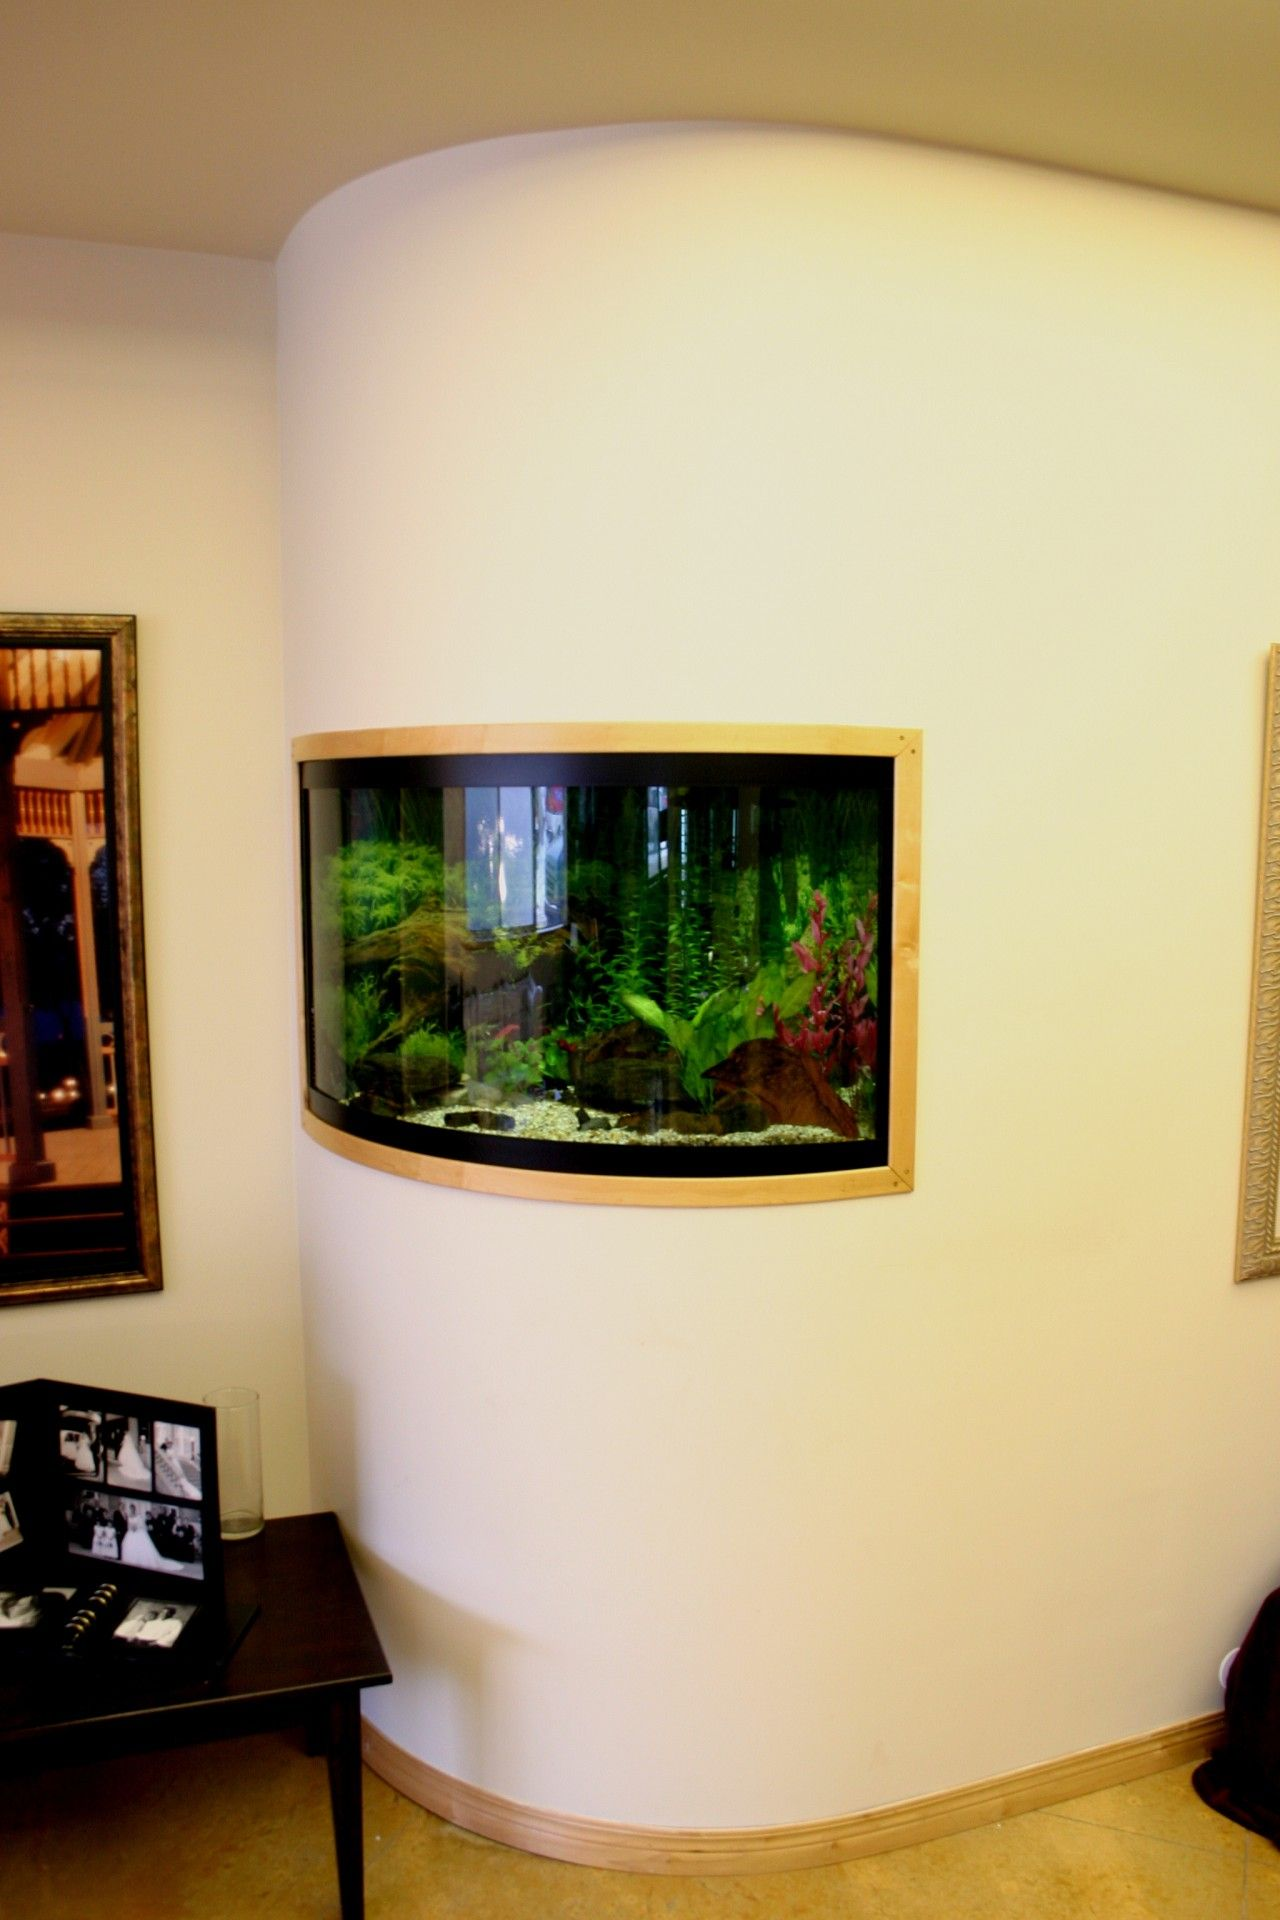 Cool idea for that corner make it round and put a fish tank to